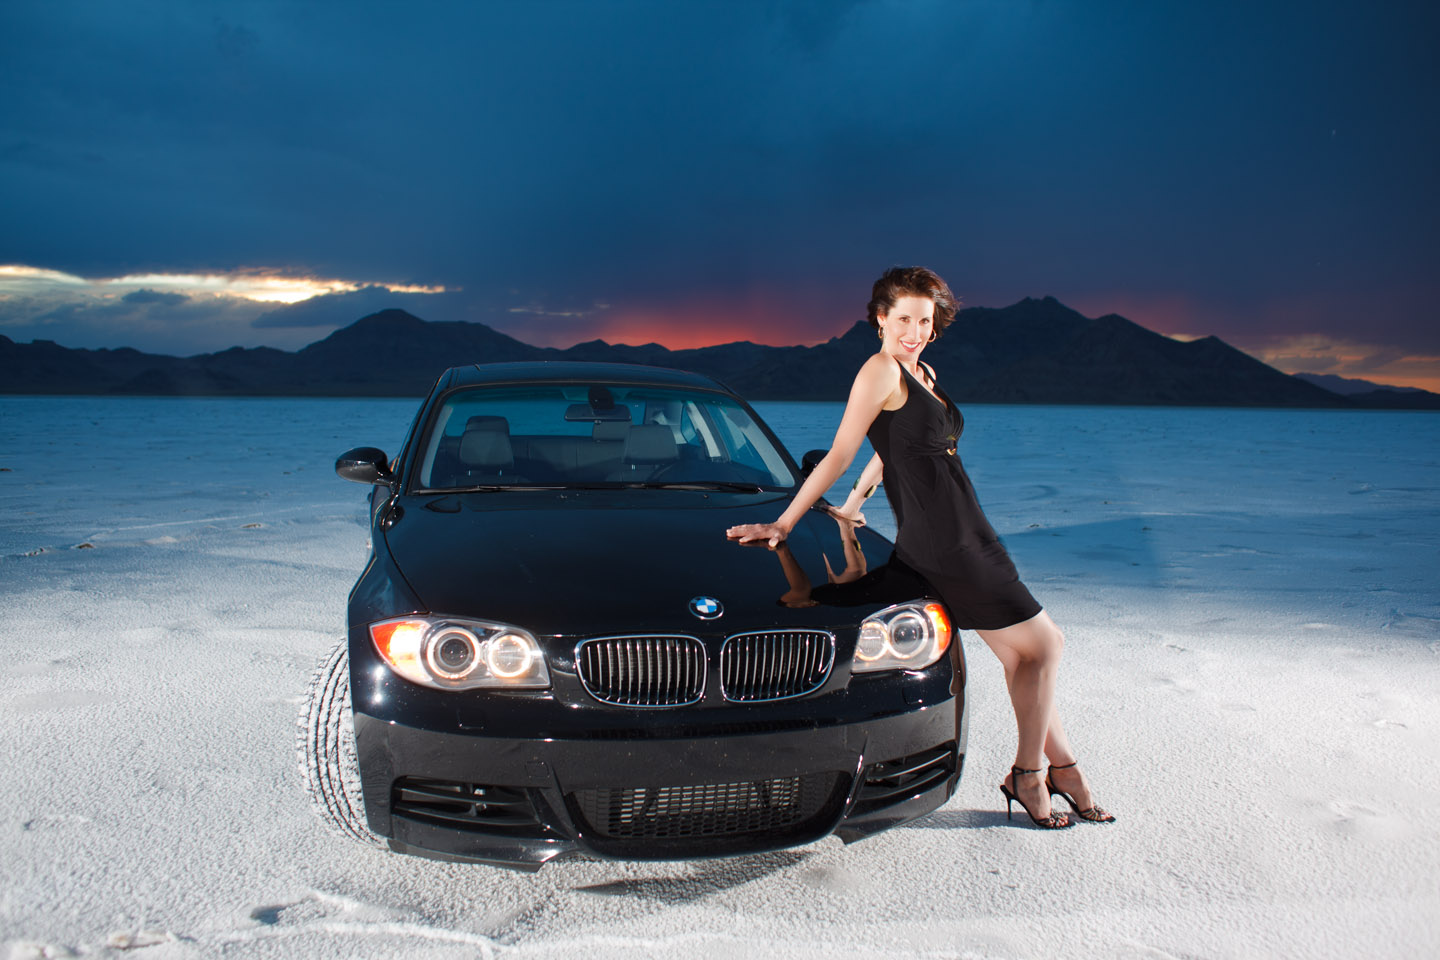 brenda a bmw and bonneville salt flats